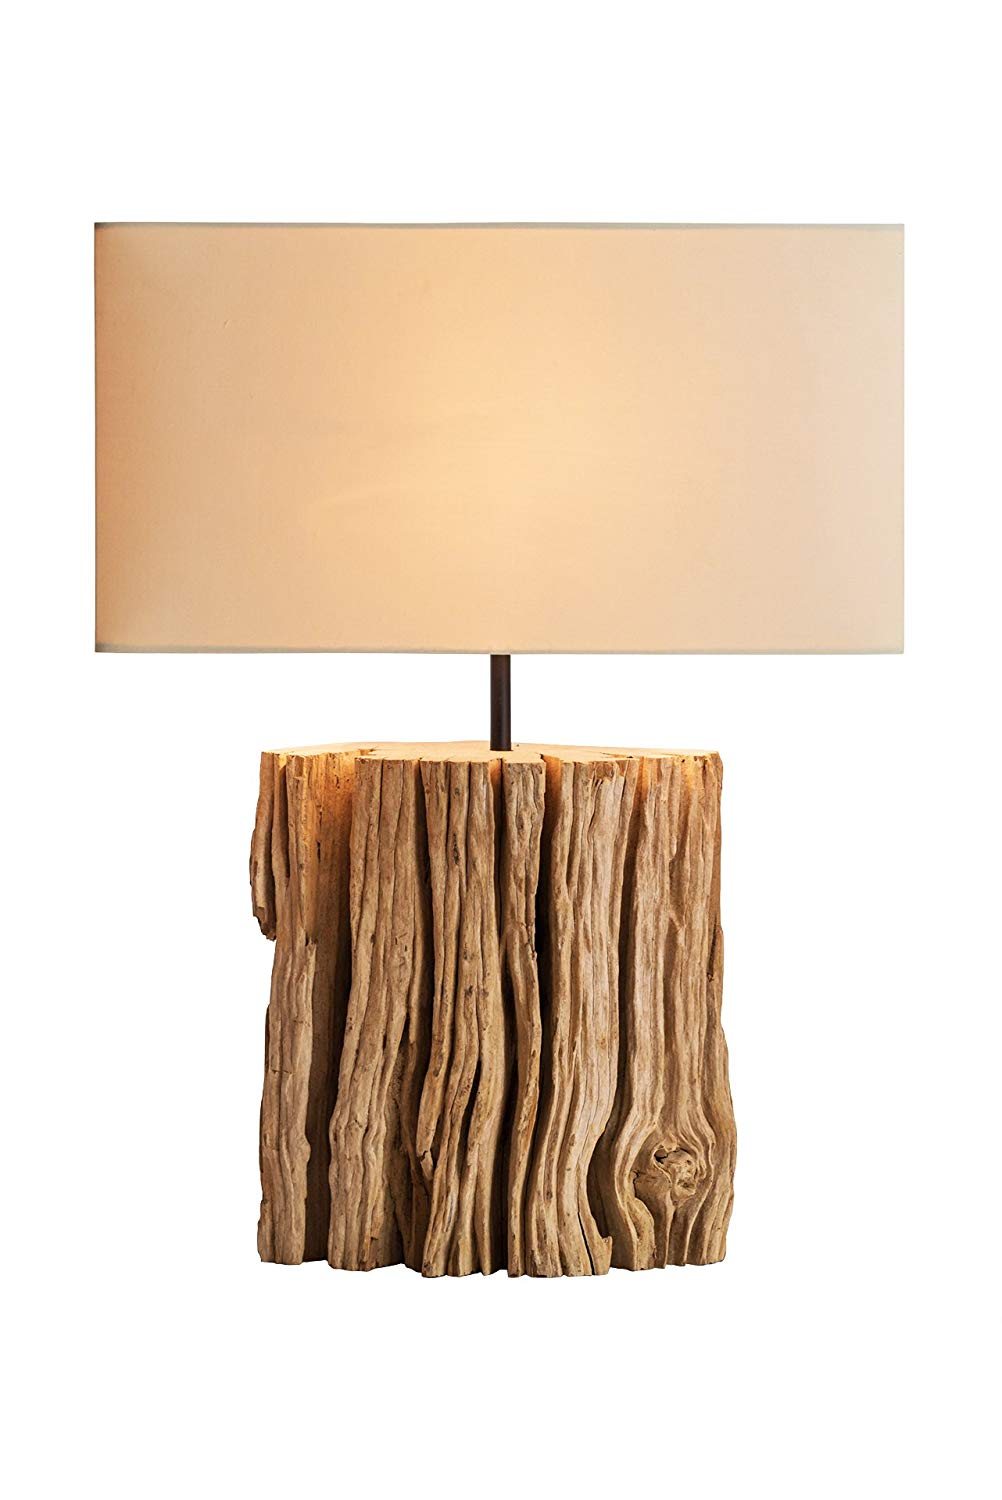 O'THENTIQUE NPD Driftwood Bark Table Lamp | Rustic Salvaged Natural Wood | Brown Shade Perfect as Entry Table Lamp, Sofa Table Lamp for Beach House, Cottage, Cabin, Bedroom, Living Room Decor